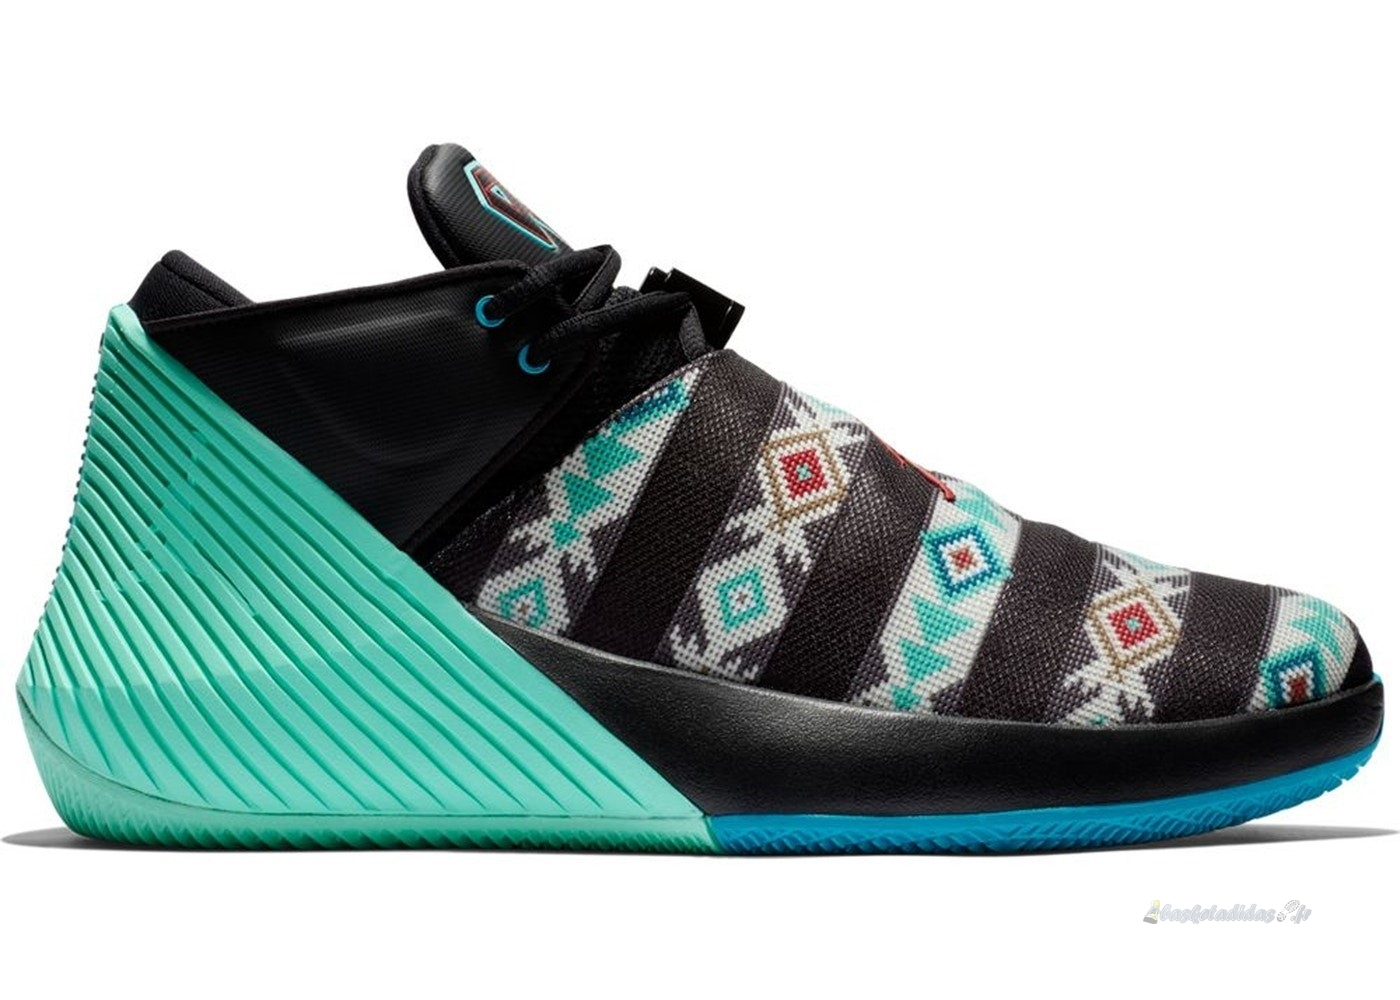 Chaussure de Basket Jordan Why Not Zer0.1 Low N7 Noir Vert (bq2383-001)